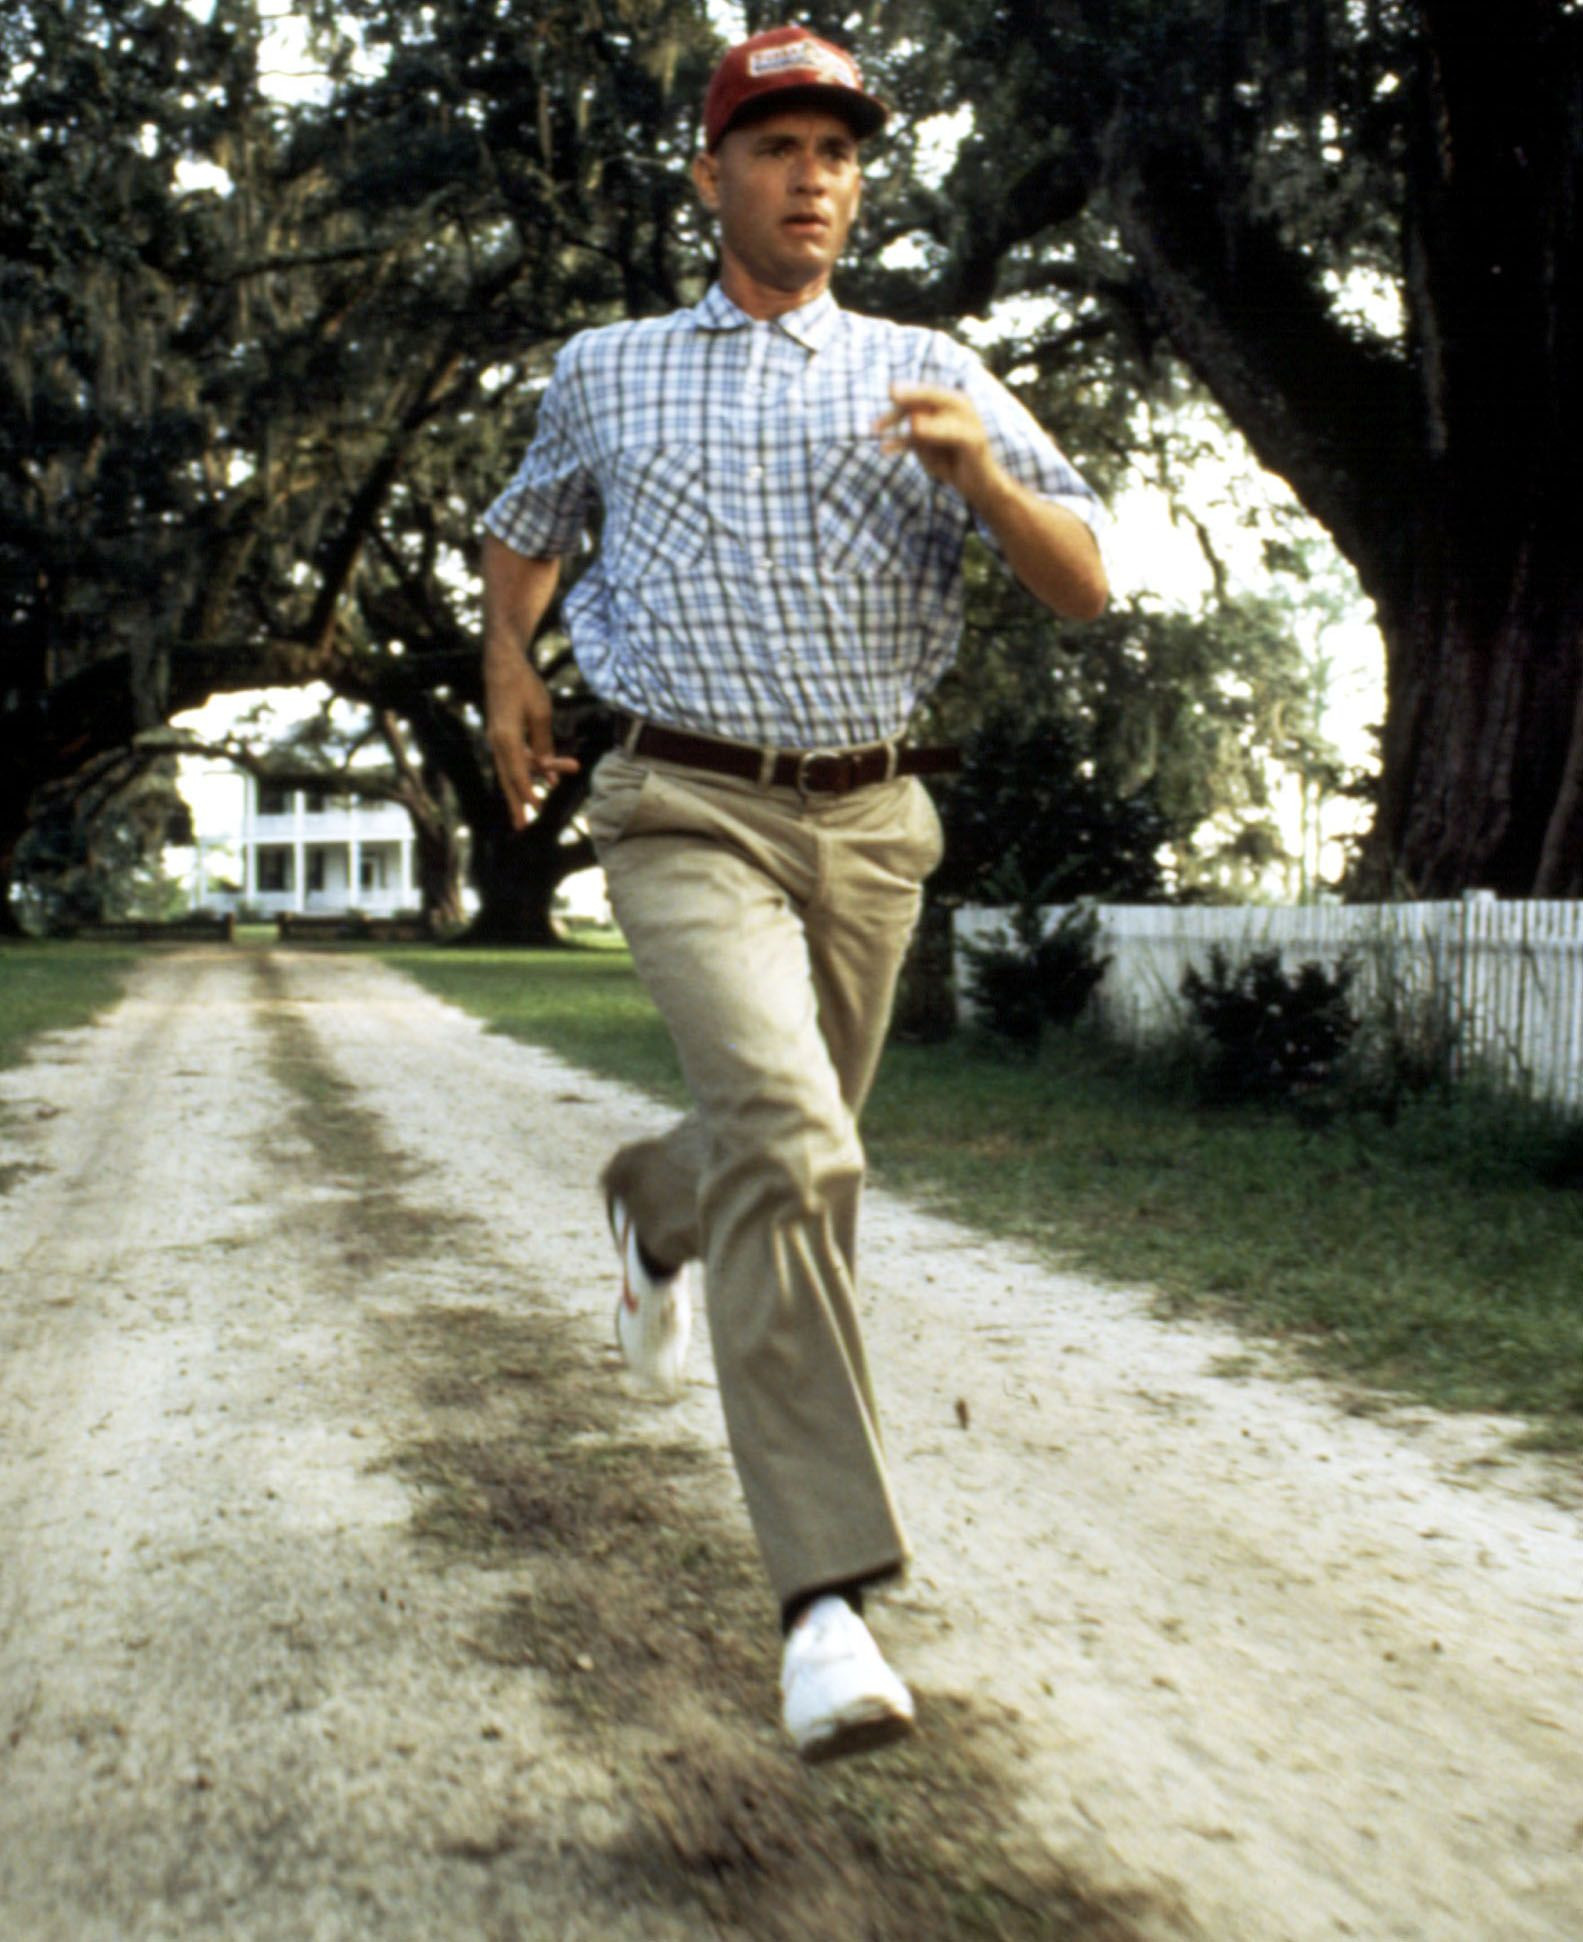 gump 12 20 Things You Might Not Have Realised About Forrest Gump